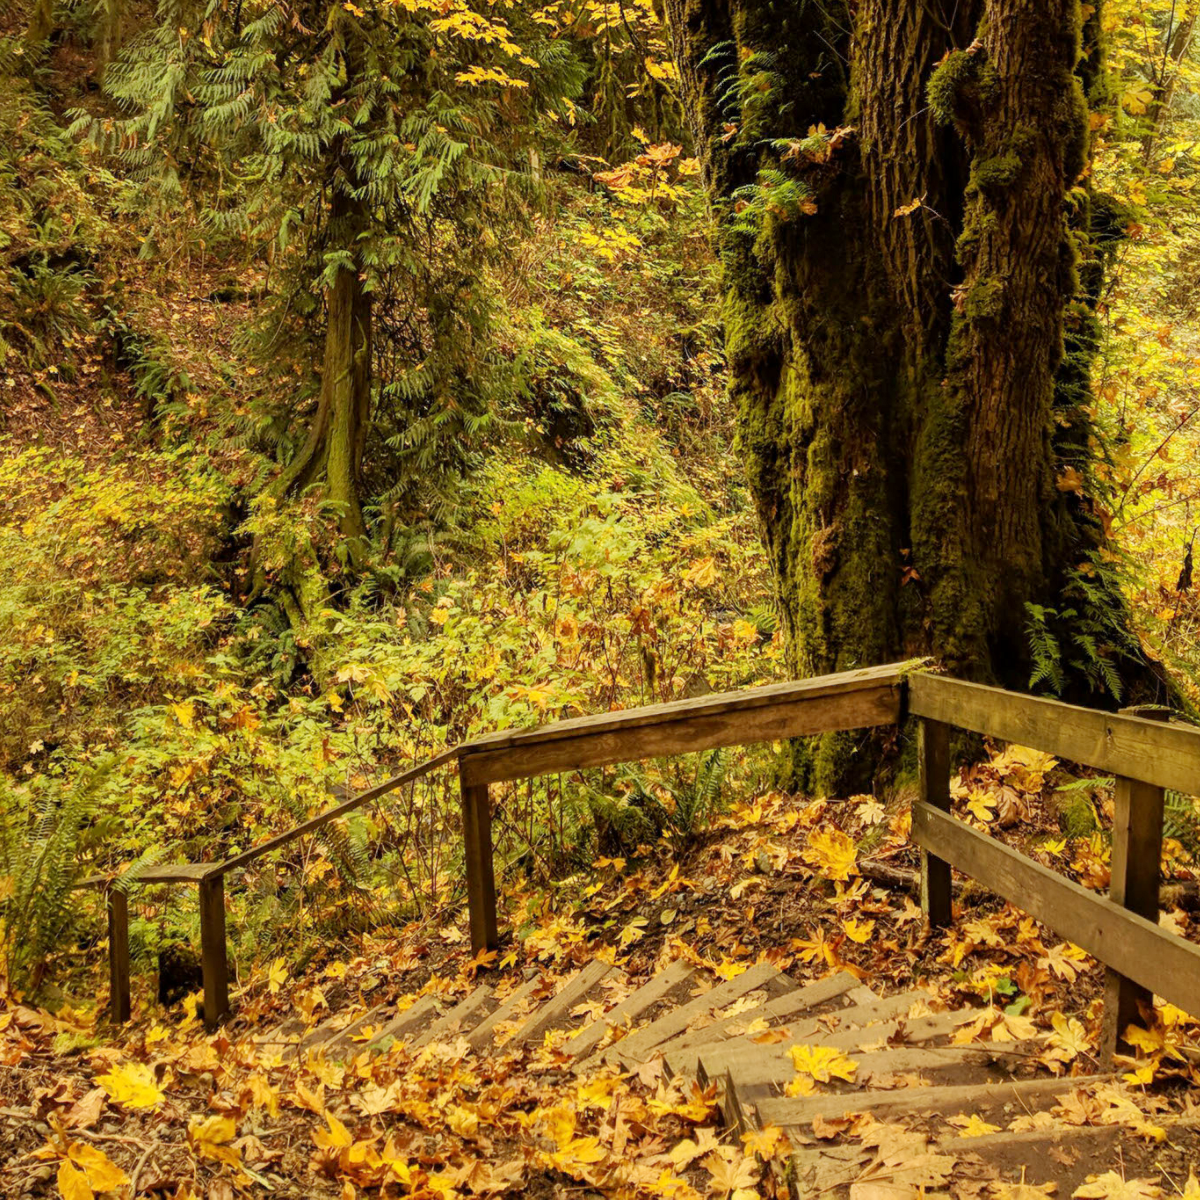 Golden trees at flaming geyser state park in the fall.